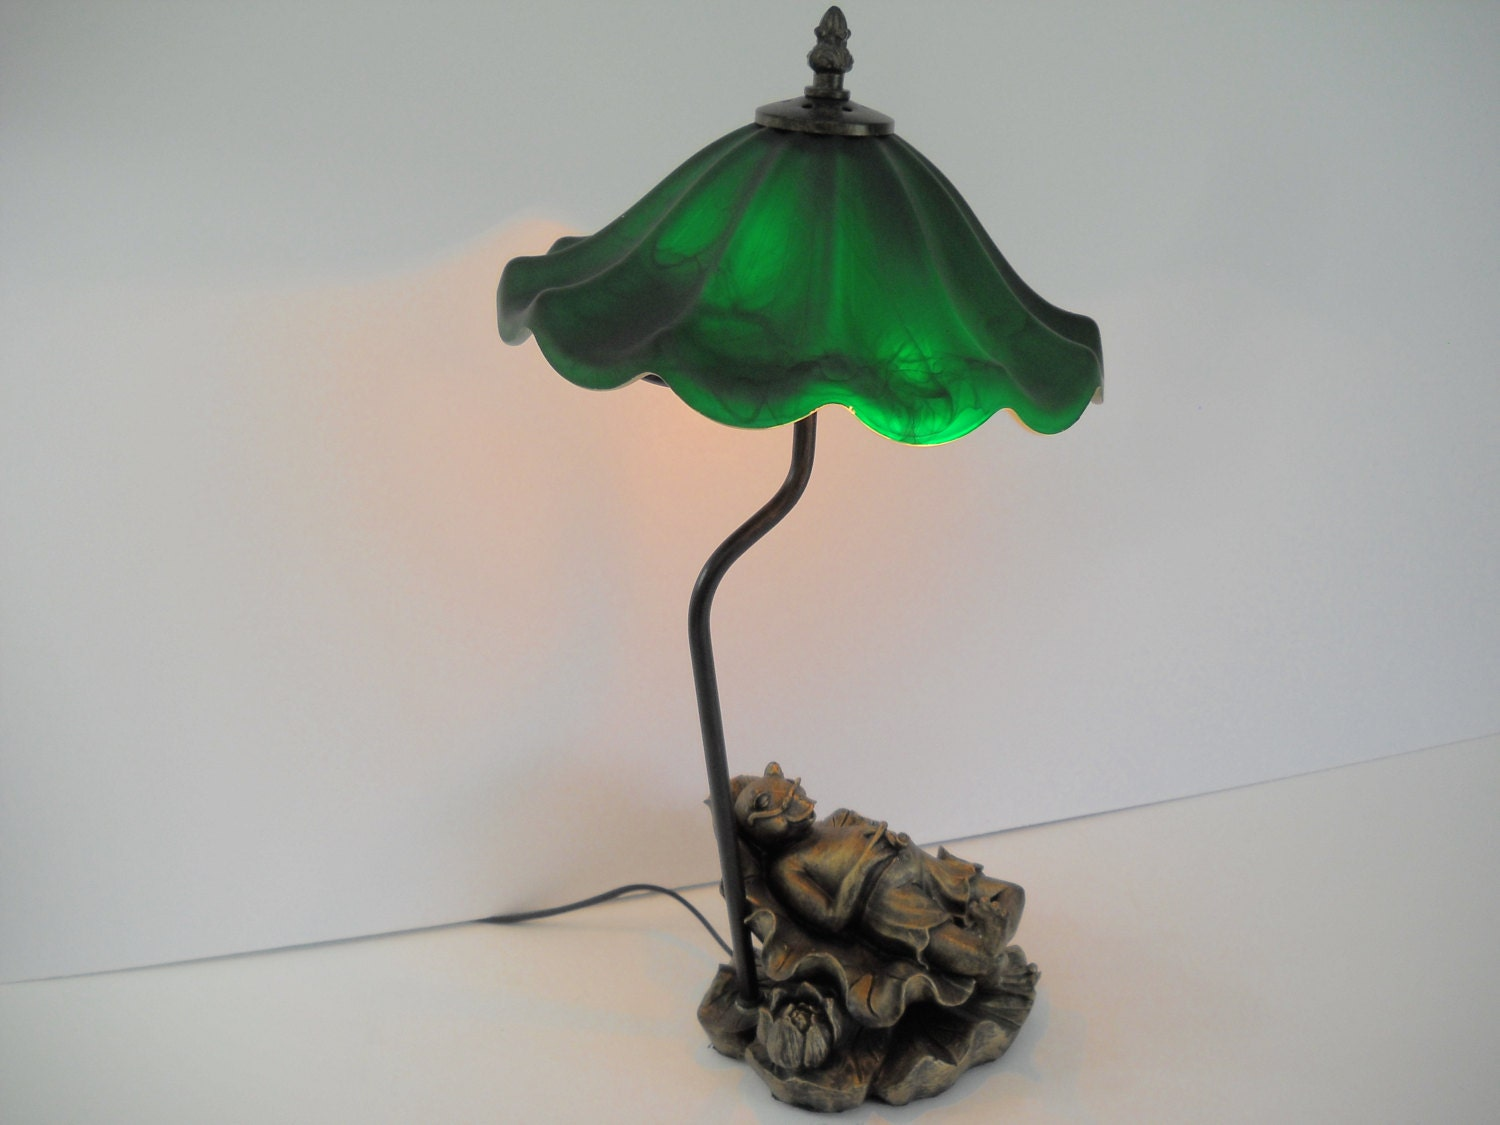 frog lamp with green glass ripple shade. Black Bedroom Furniture Sets. Home Design Ideas